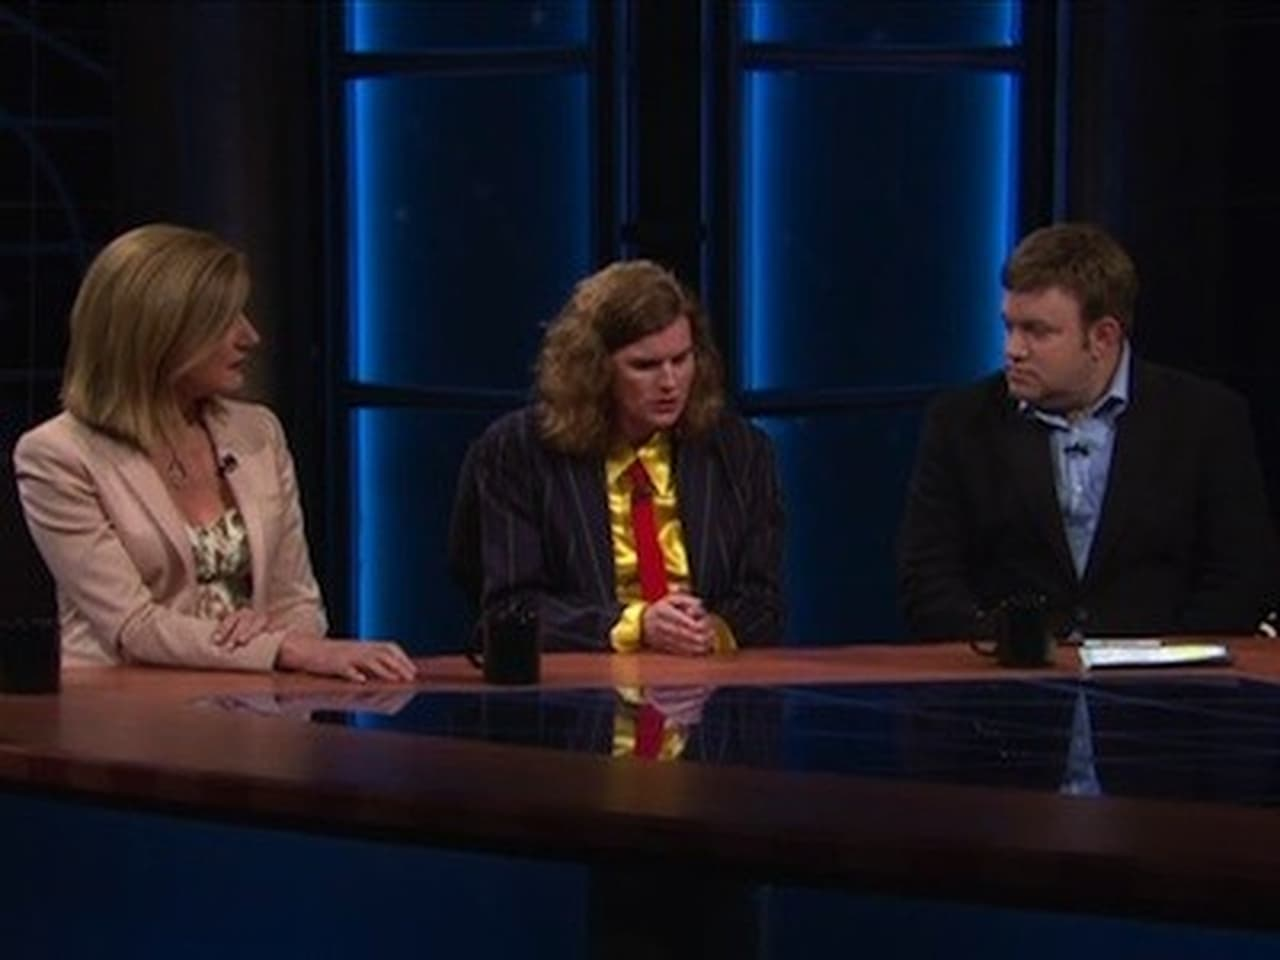 Real Time with Bill Maher - Season 5 Episode 12 : May 11, 2007